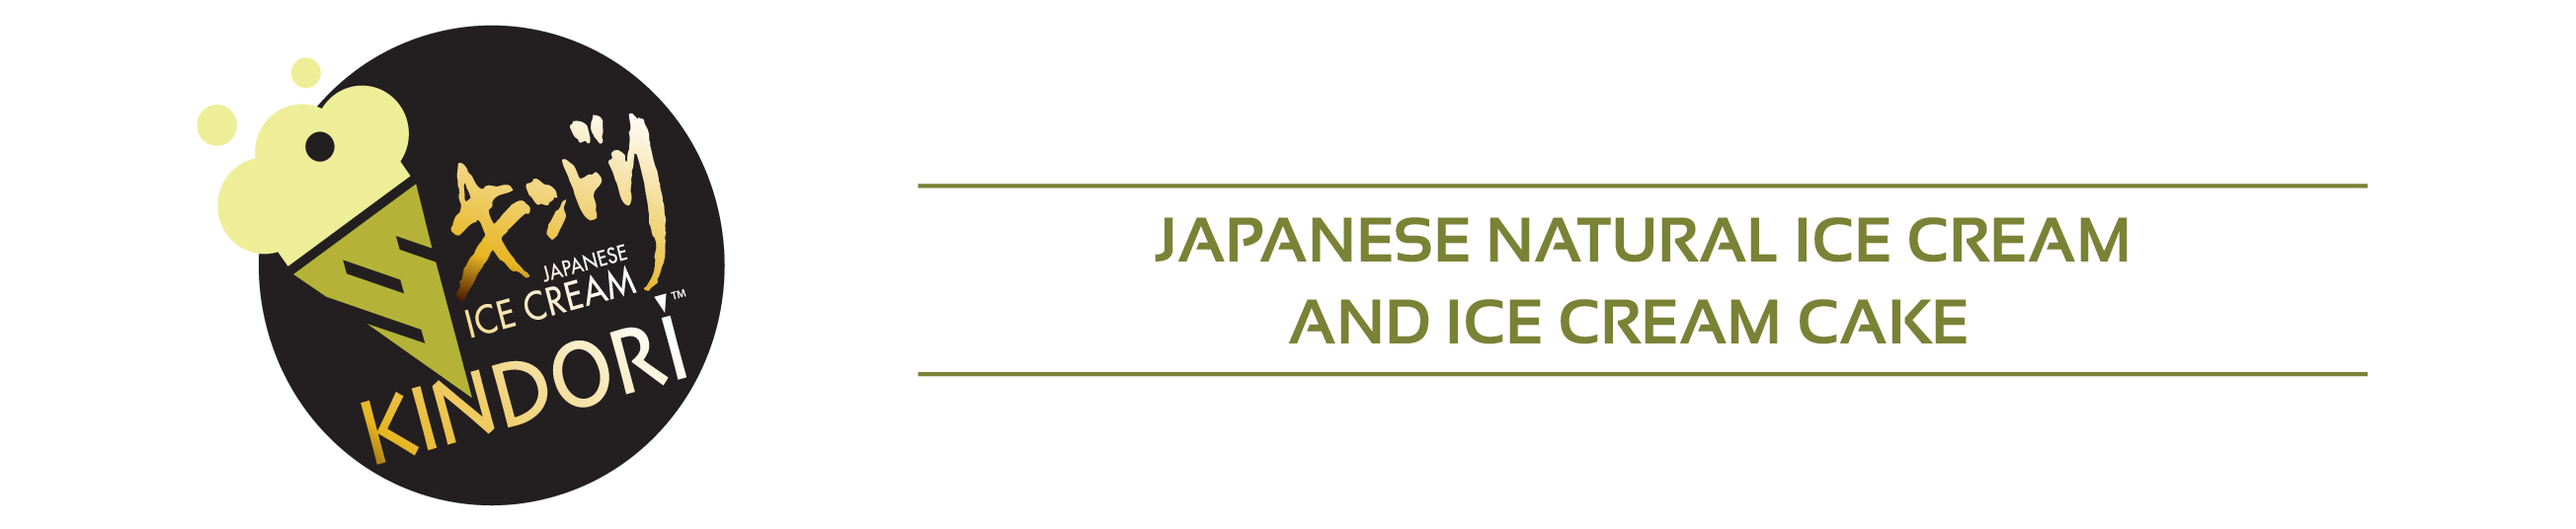 KINDORI - Japanese Natural Ice Cream and Ice Cream Cake